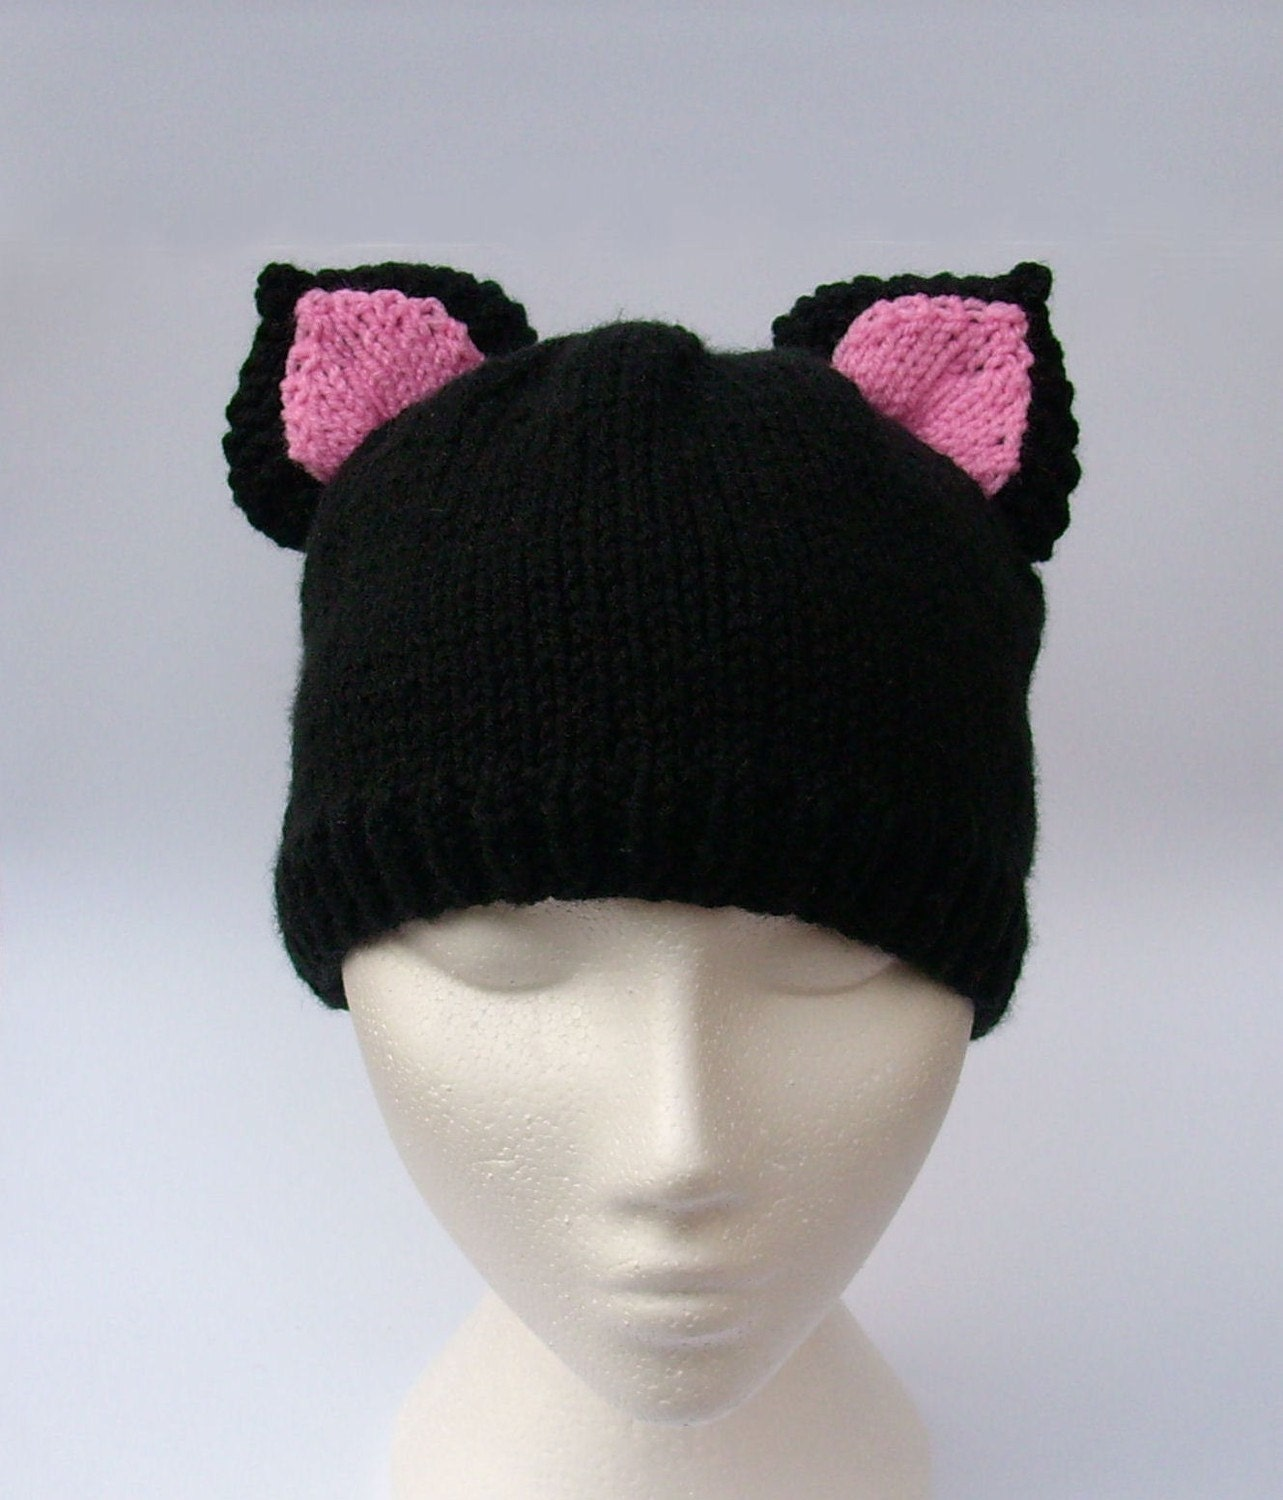 Knitting Pattern Kitty Cat Hat : Knitted Cat hat with ears Handmade knitted Kitty Cat by jarg0n Craftjuice H...